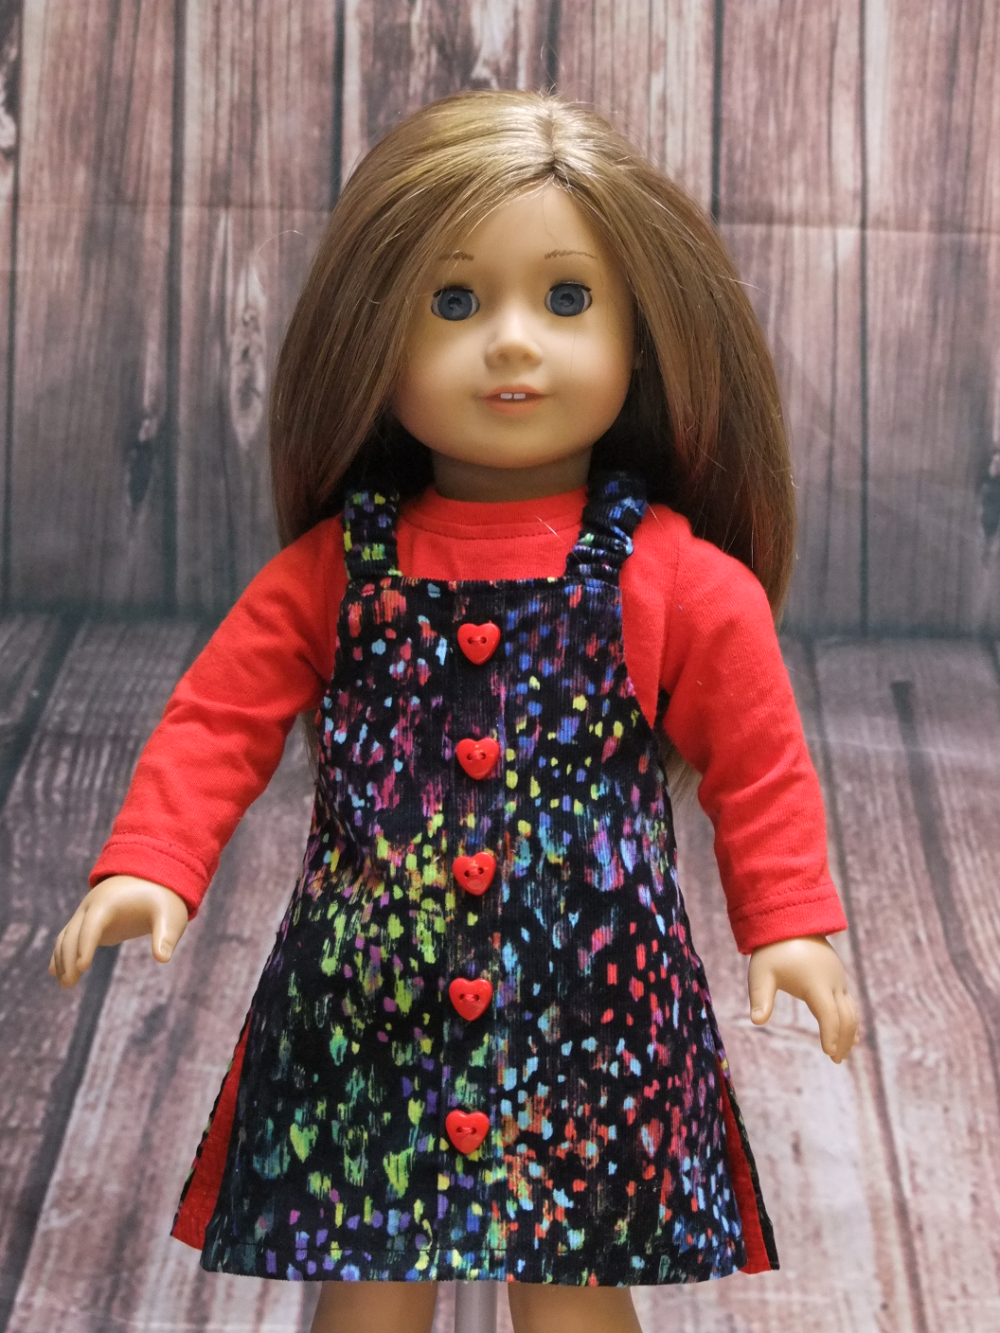 Tester Tuesday: Easy Up! Jumper Pattern for 18 inch dolls #18inchdollsandclothes